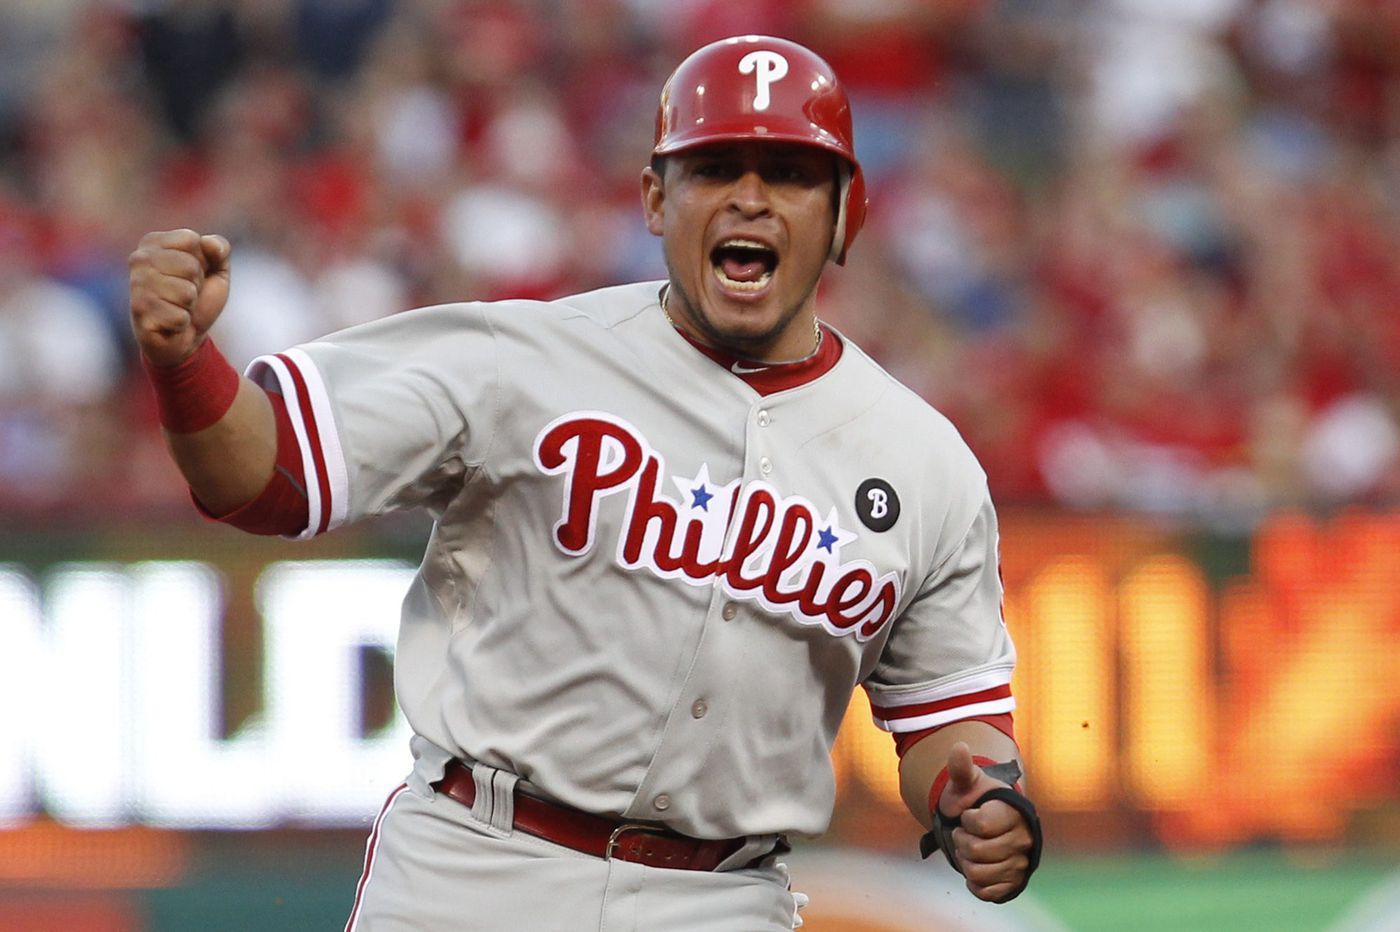 Phillies are big on Latin American players, but lack Latino superstars | Part 2